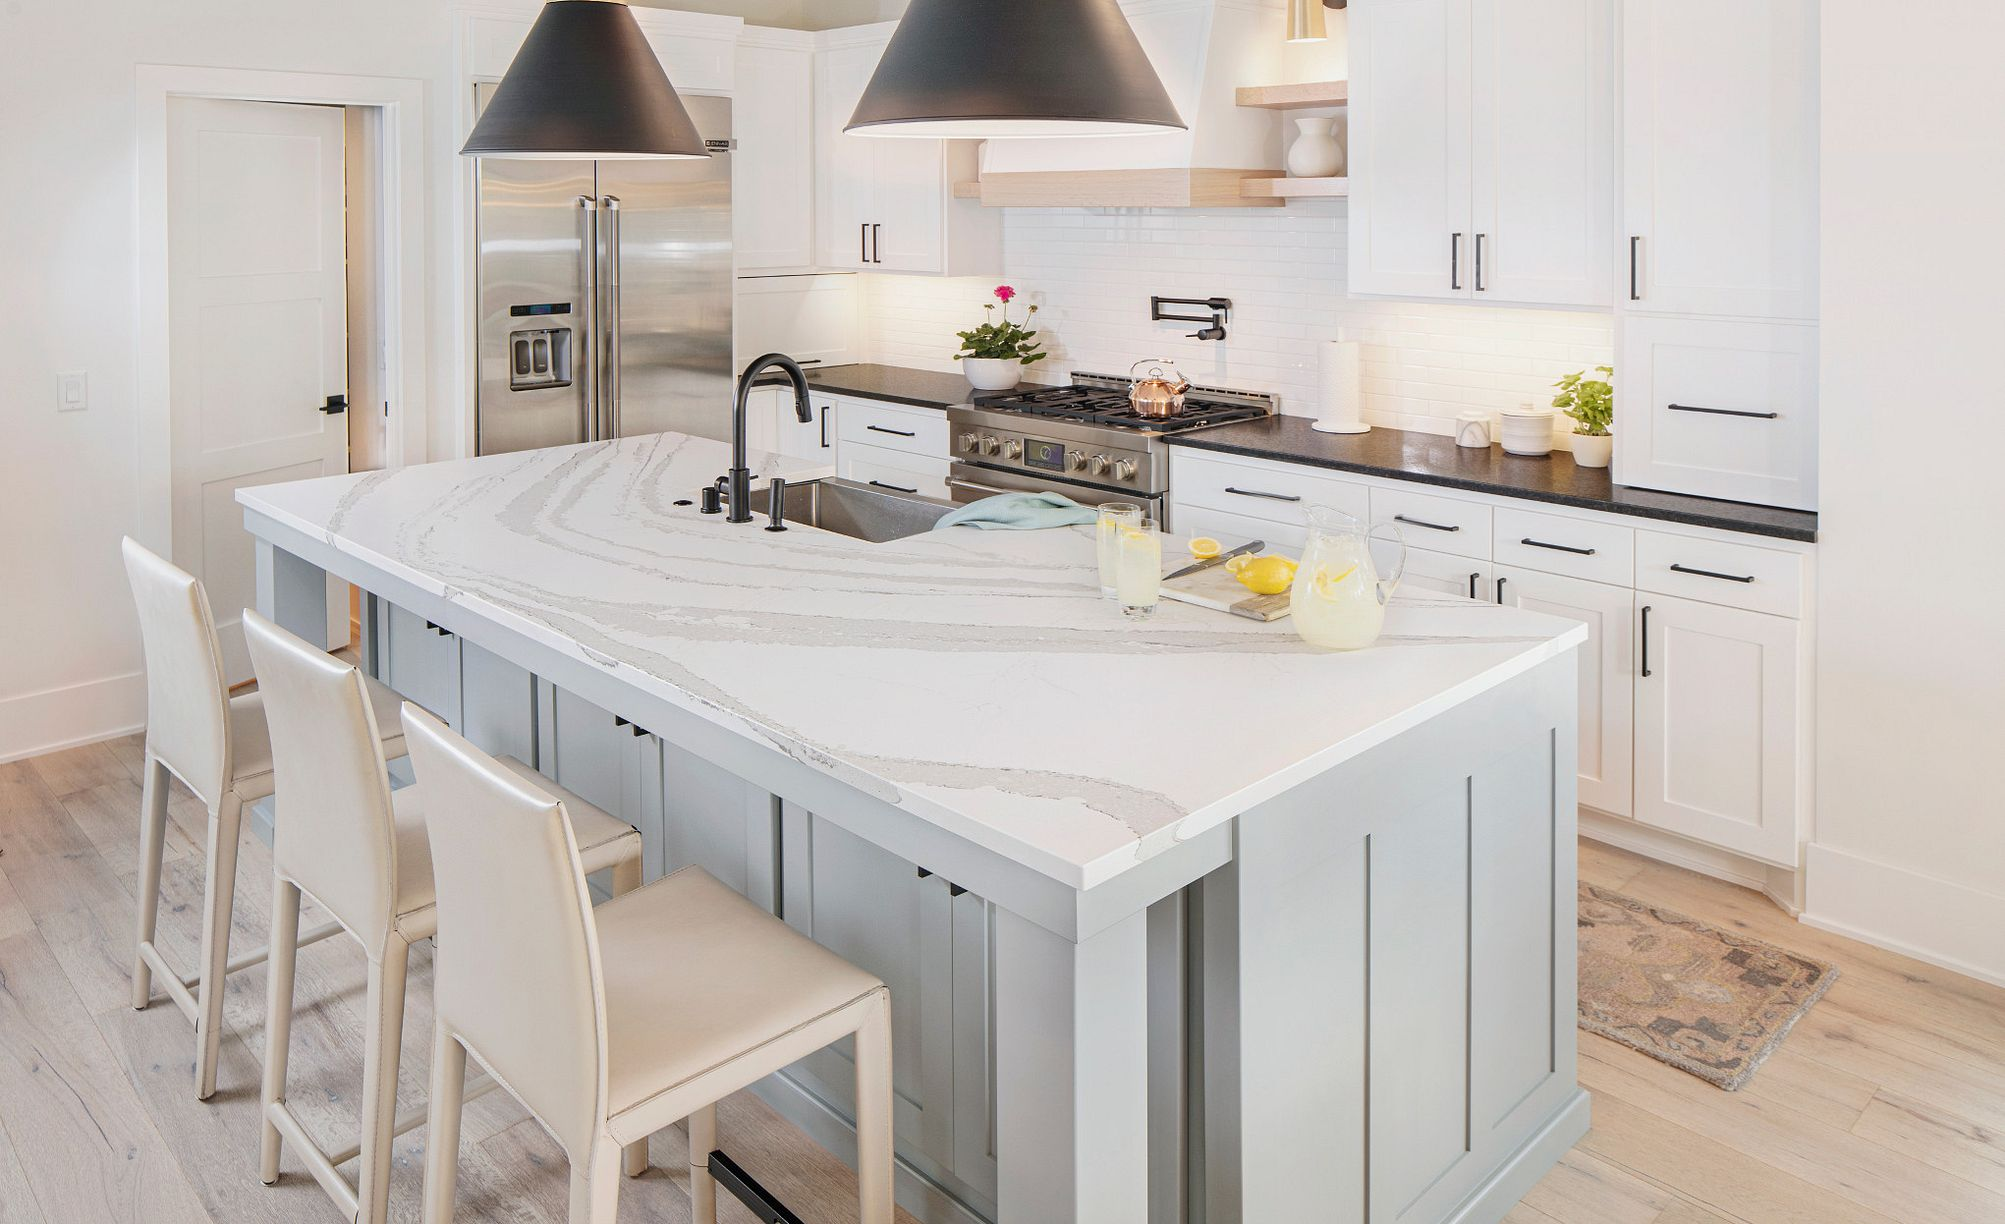 White marble-look quartz countertops in paired with matte black accents and two-tone cabinets.